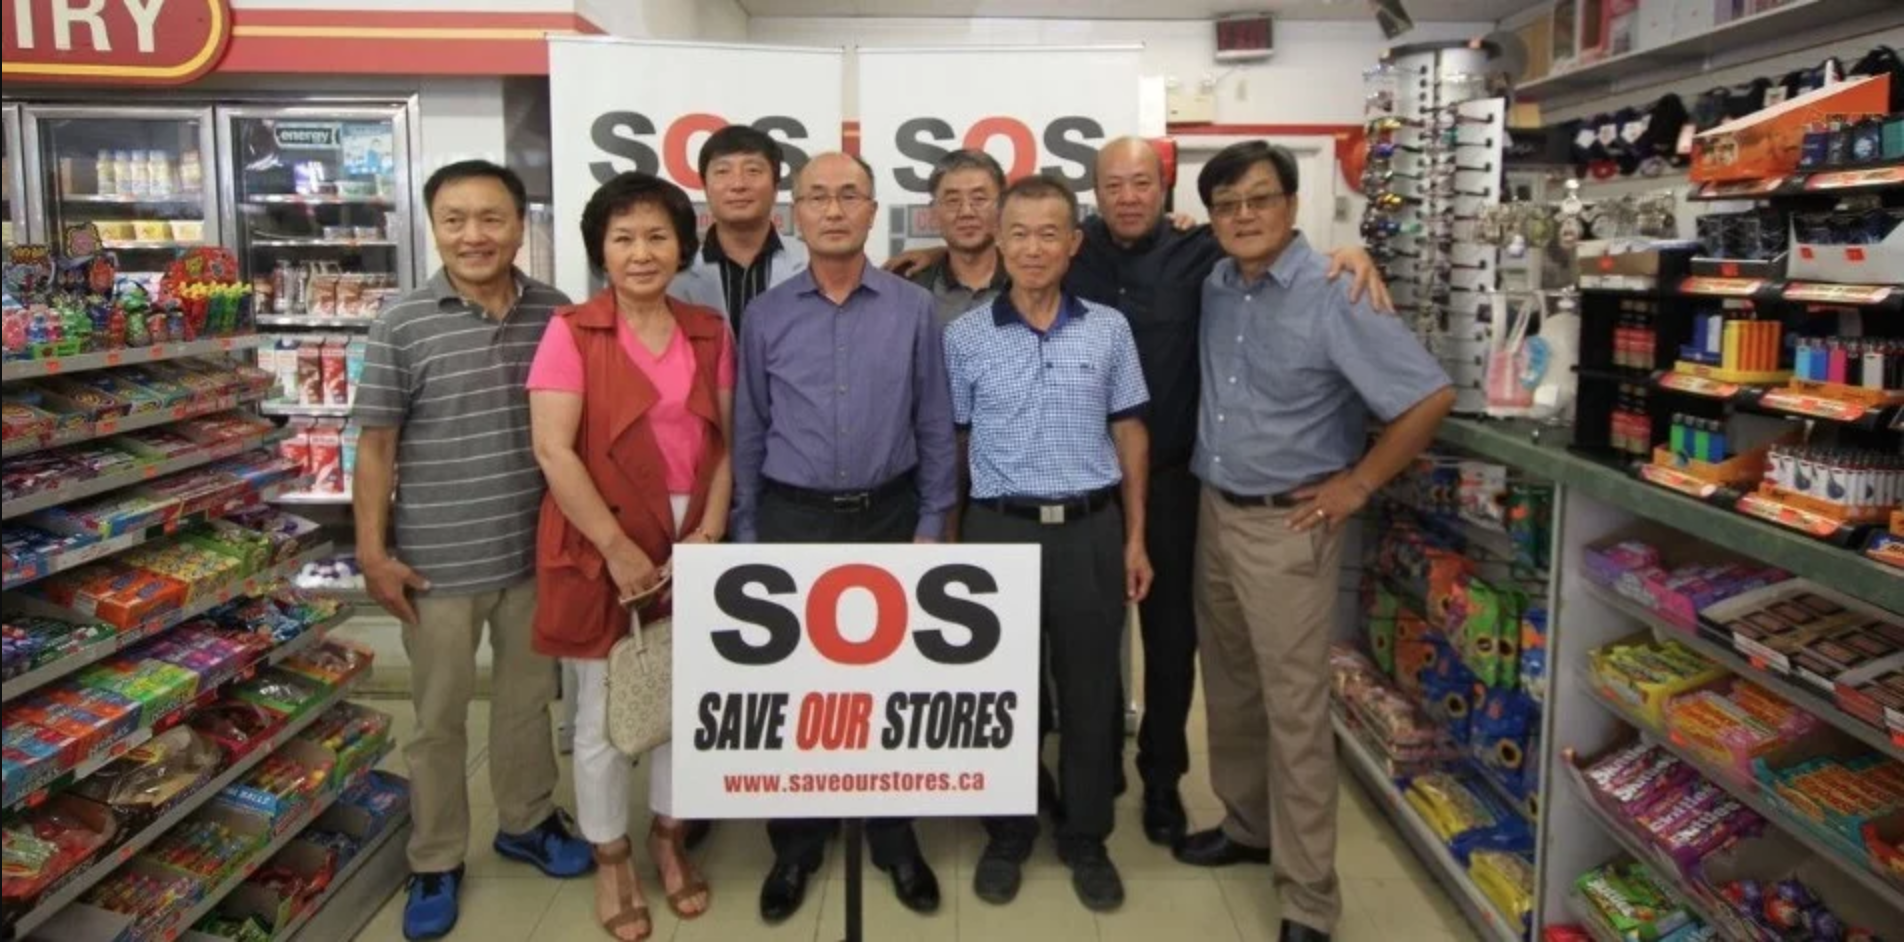 OKBA store owners standing in a convenience store with an SOS sign